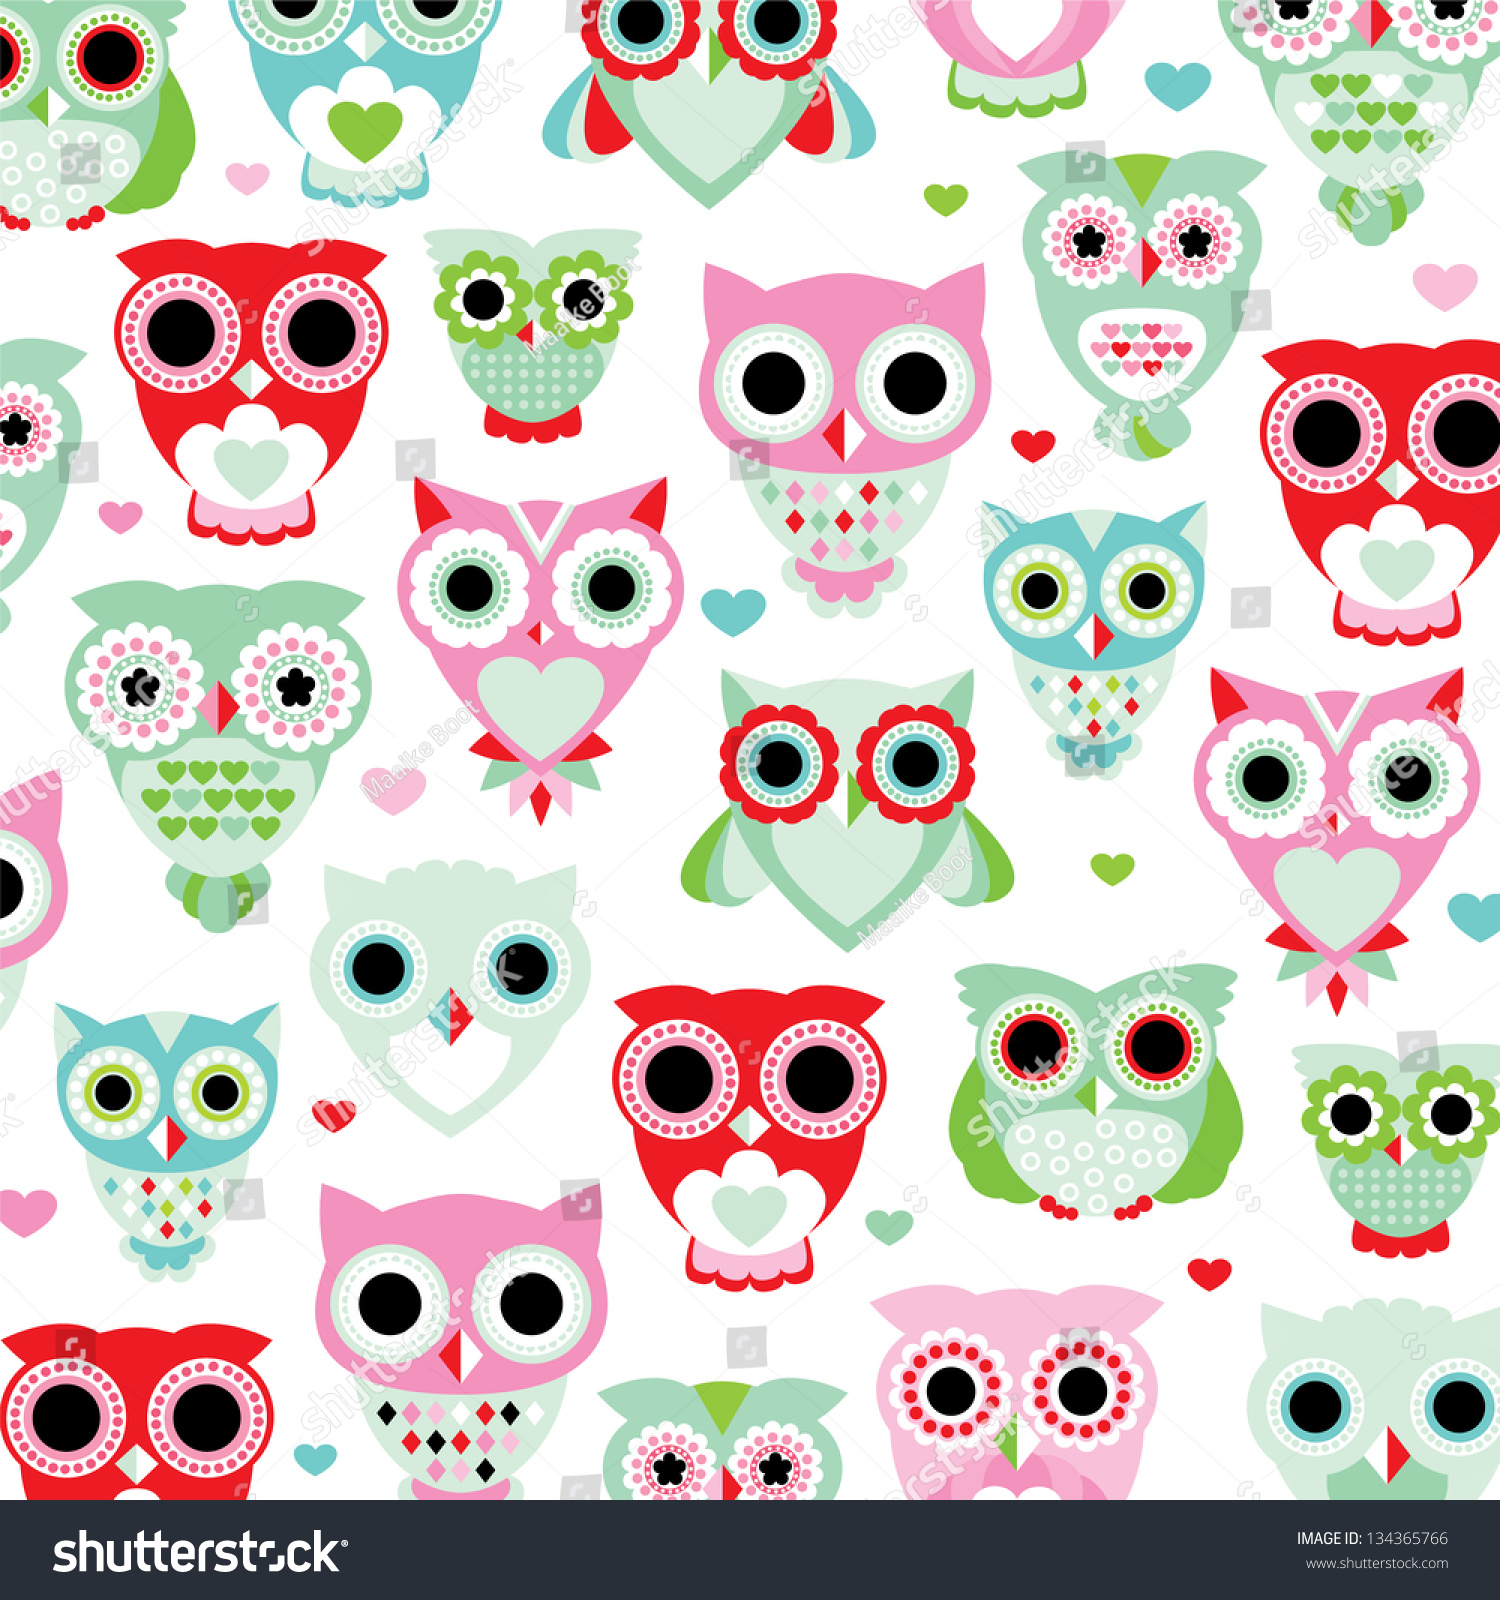 Free Owl Wallpapers: Seamless Pastel Powder Color Owl Background Stock Vector